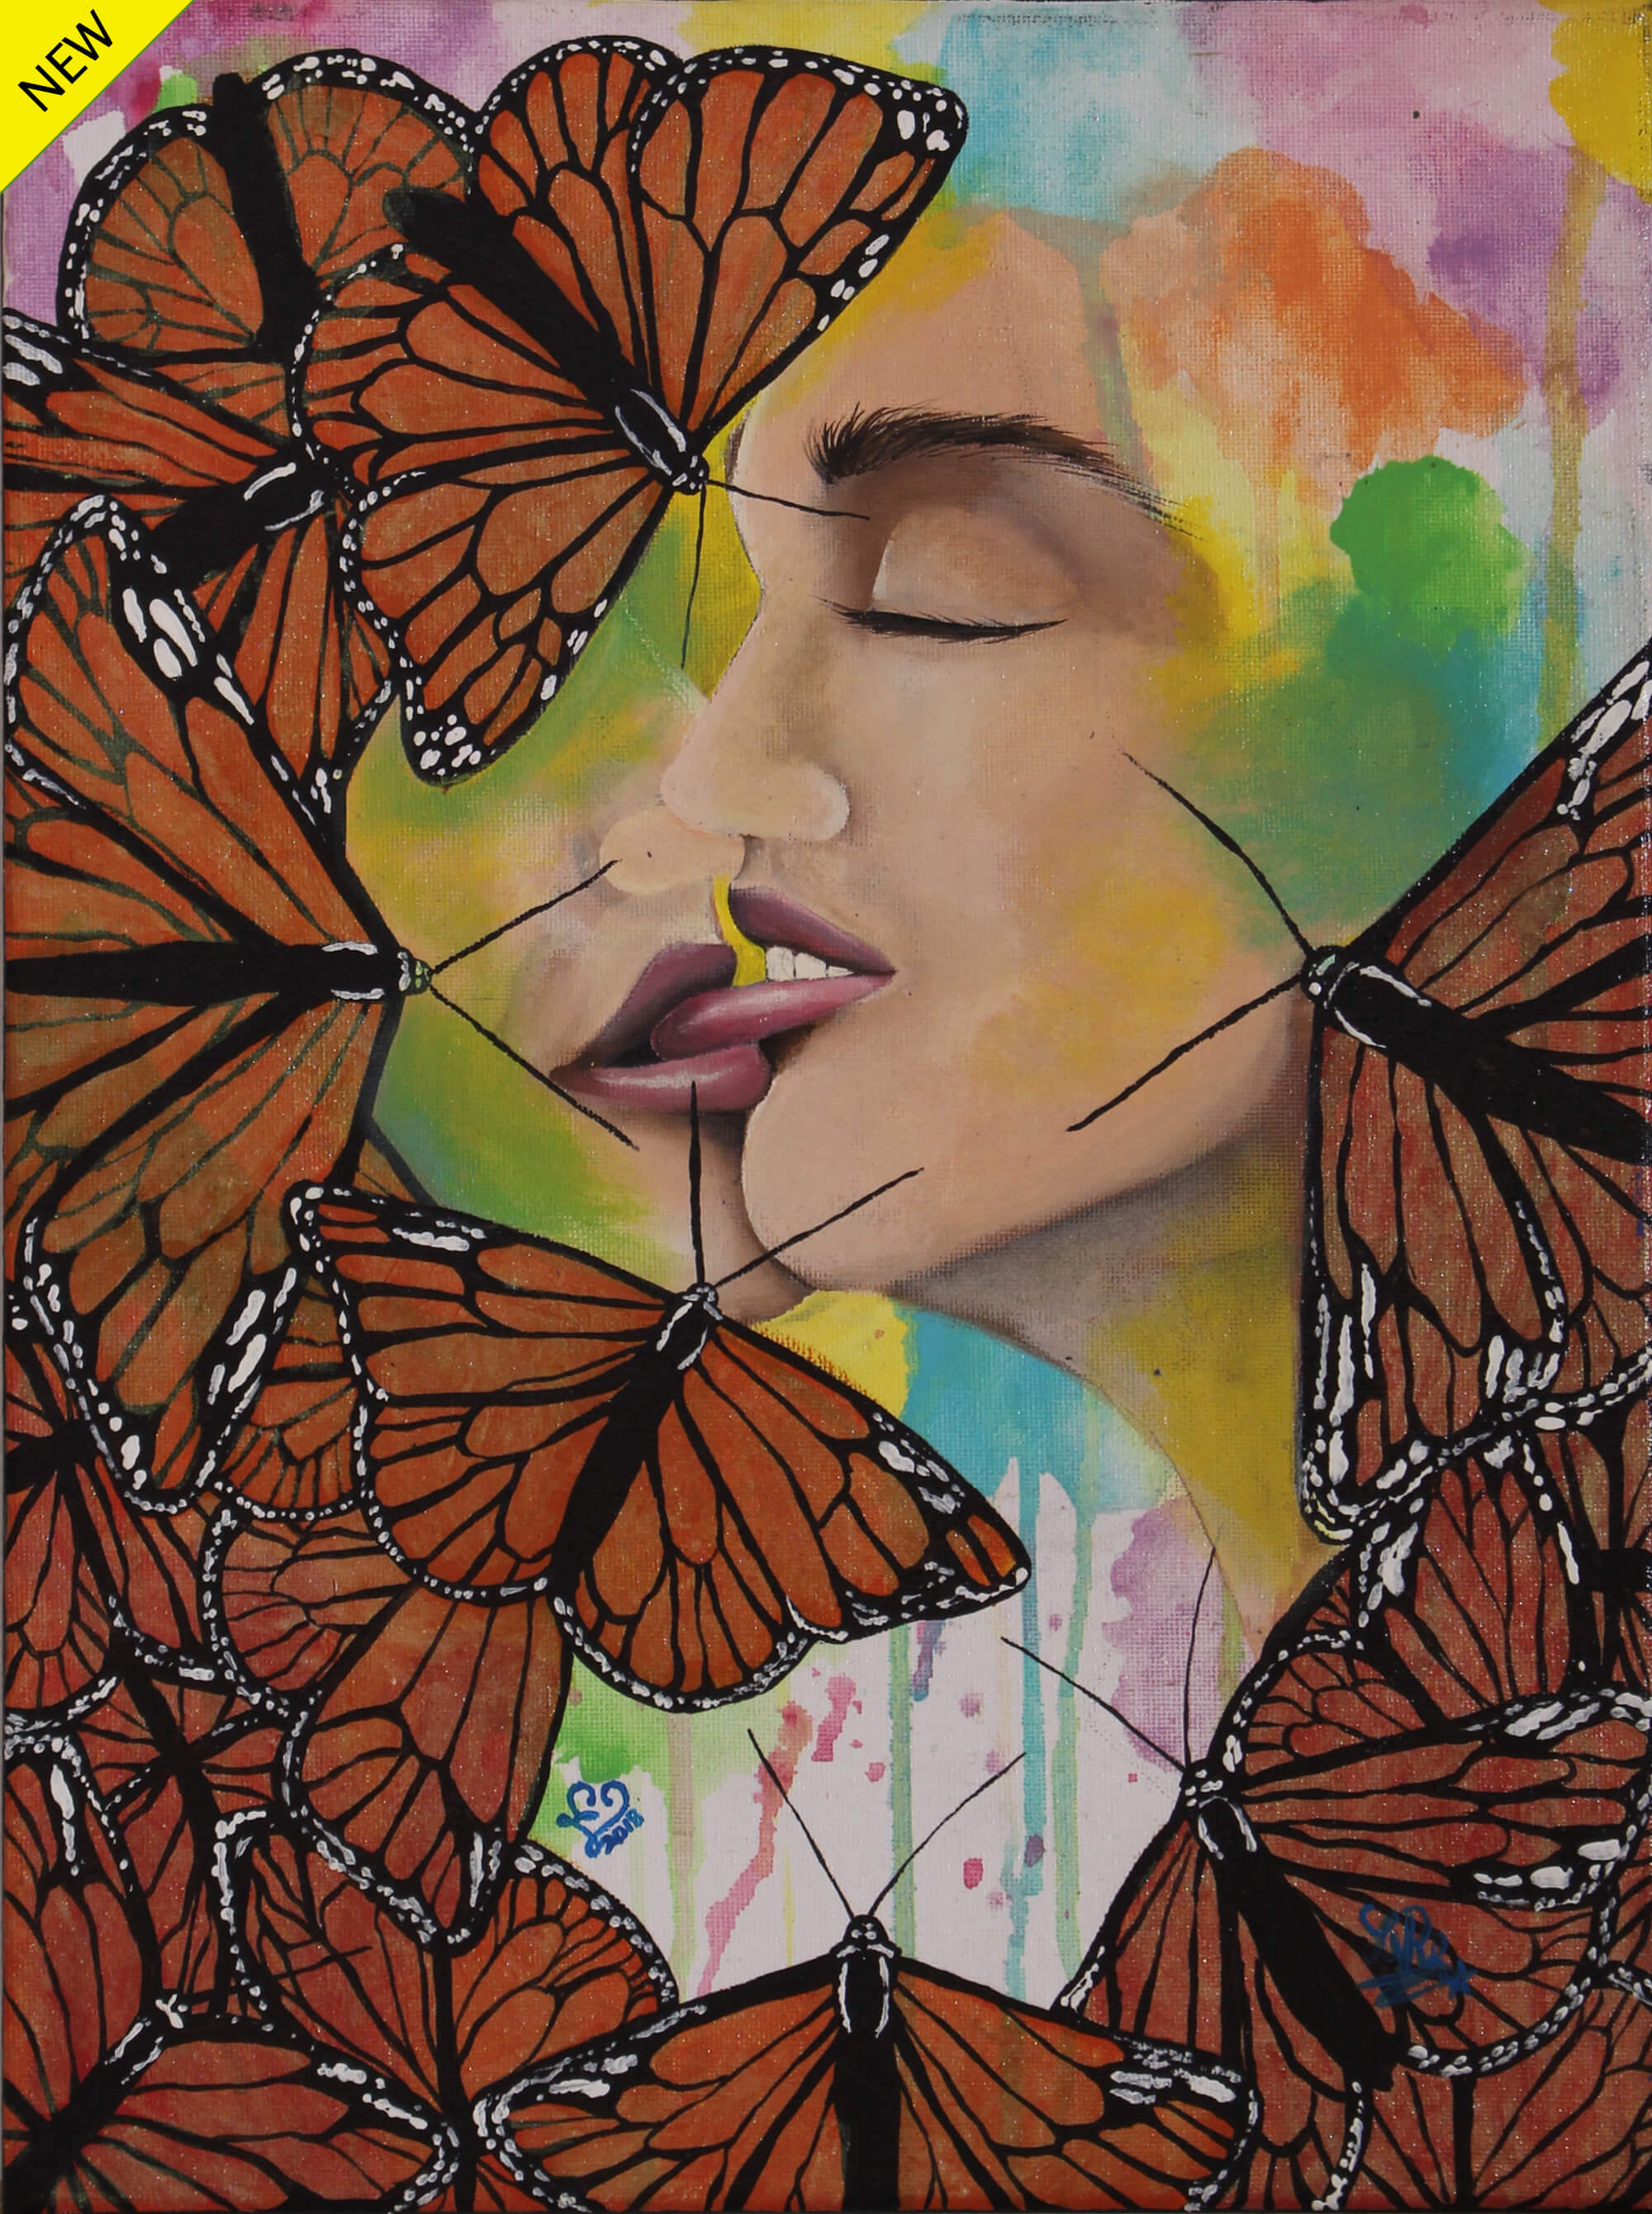 Painting of a french-kissing couple with their heads partially covered by Monarch butterflies in the foreground by Laurencia Victoria.